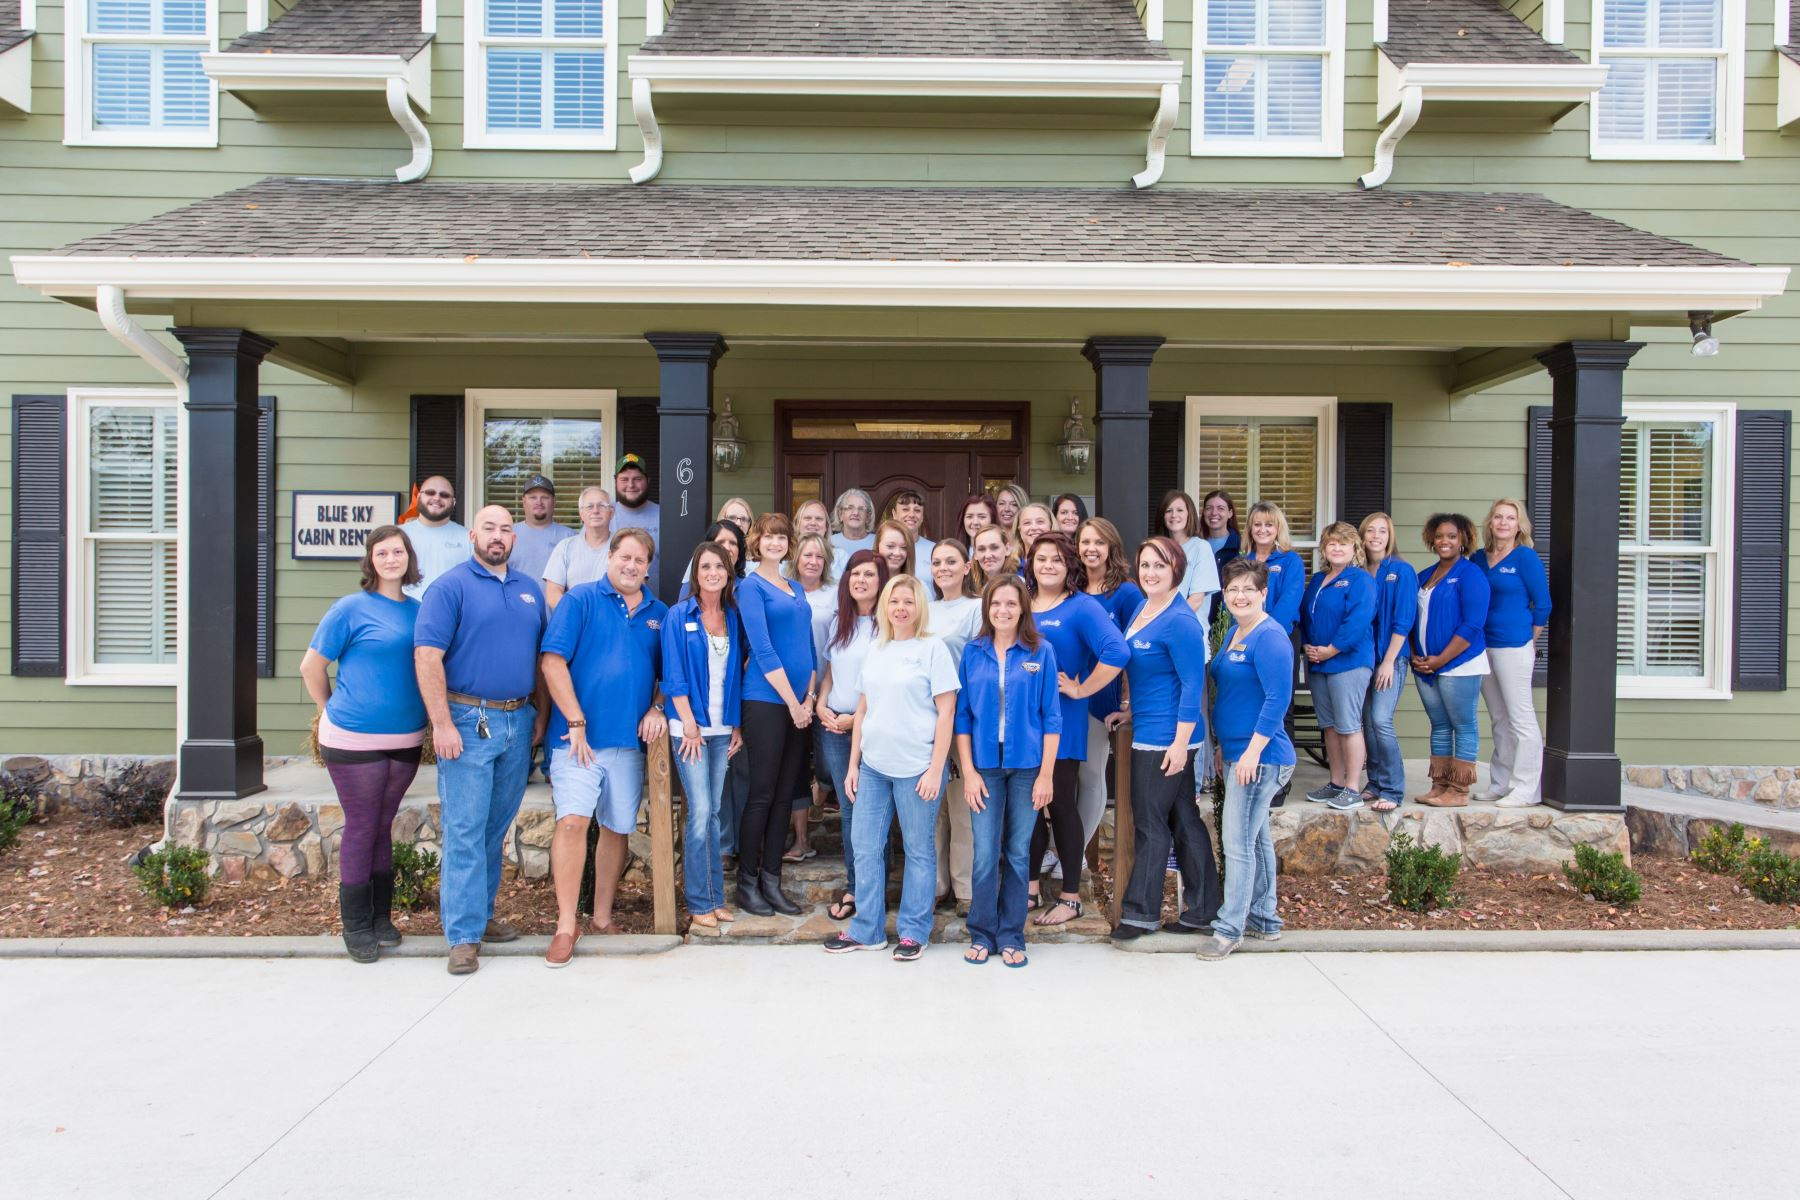 The amazing team at Blue Sky Cabin Rentals! Taken Oct. 2016.